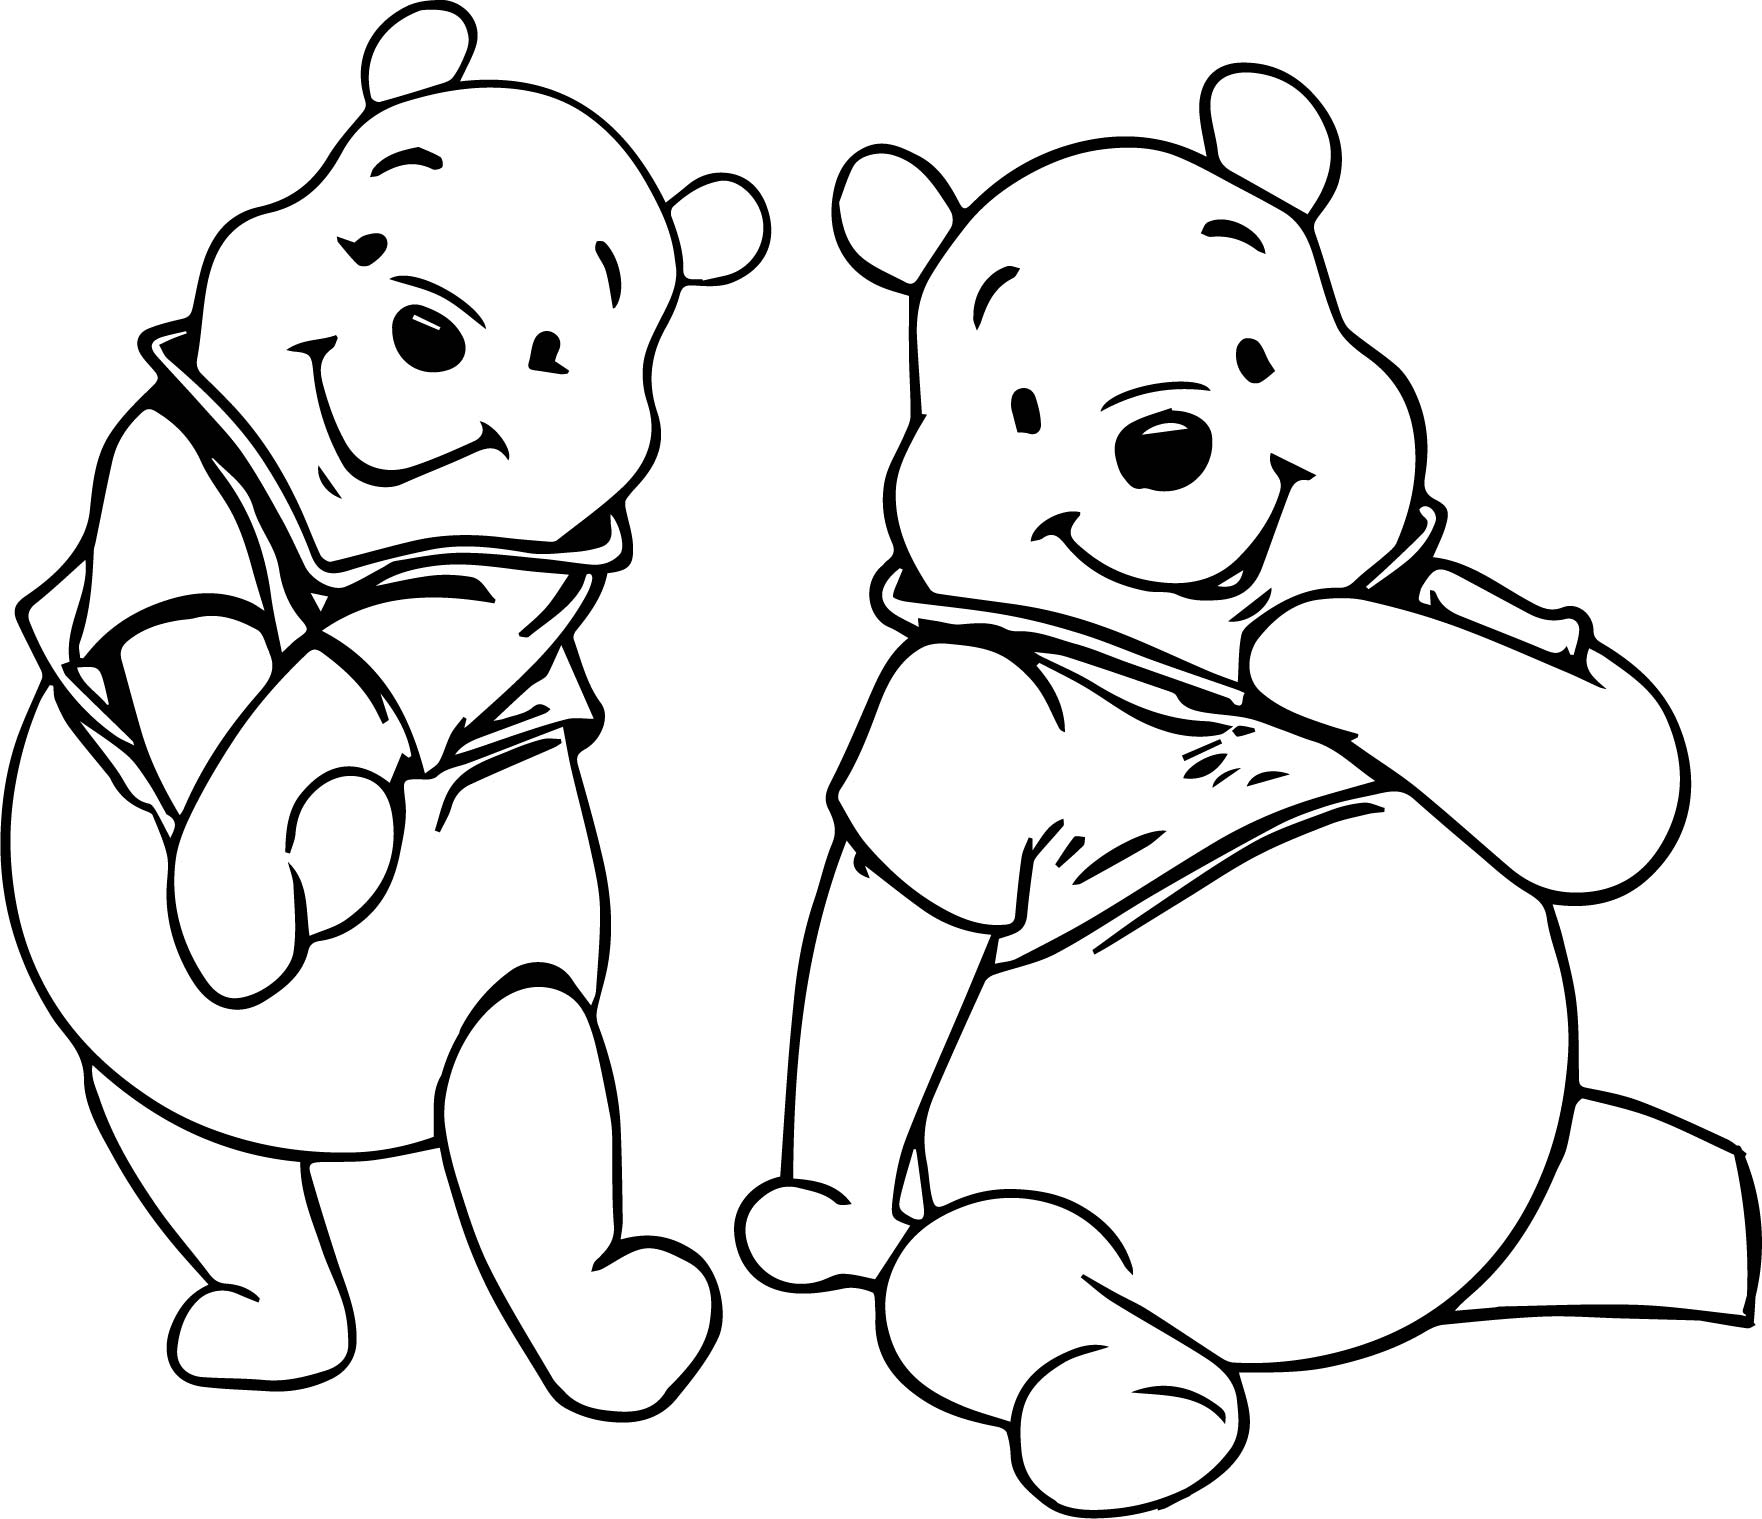 Cartoon Ear Listening Coloring Pages